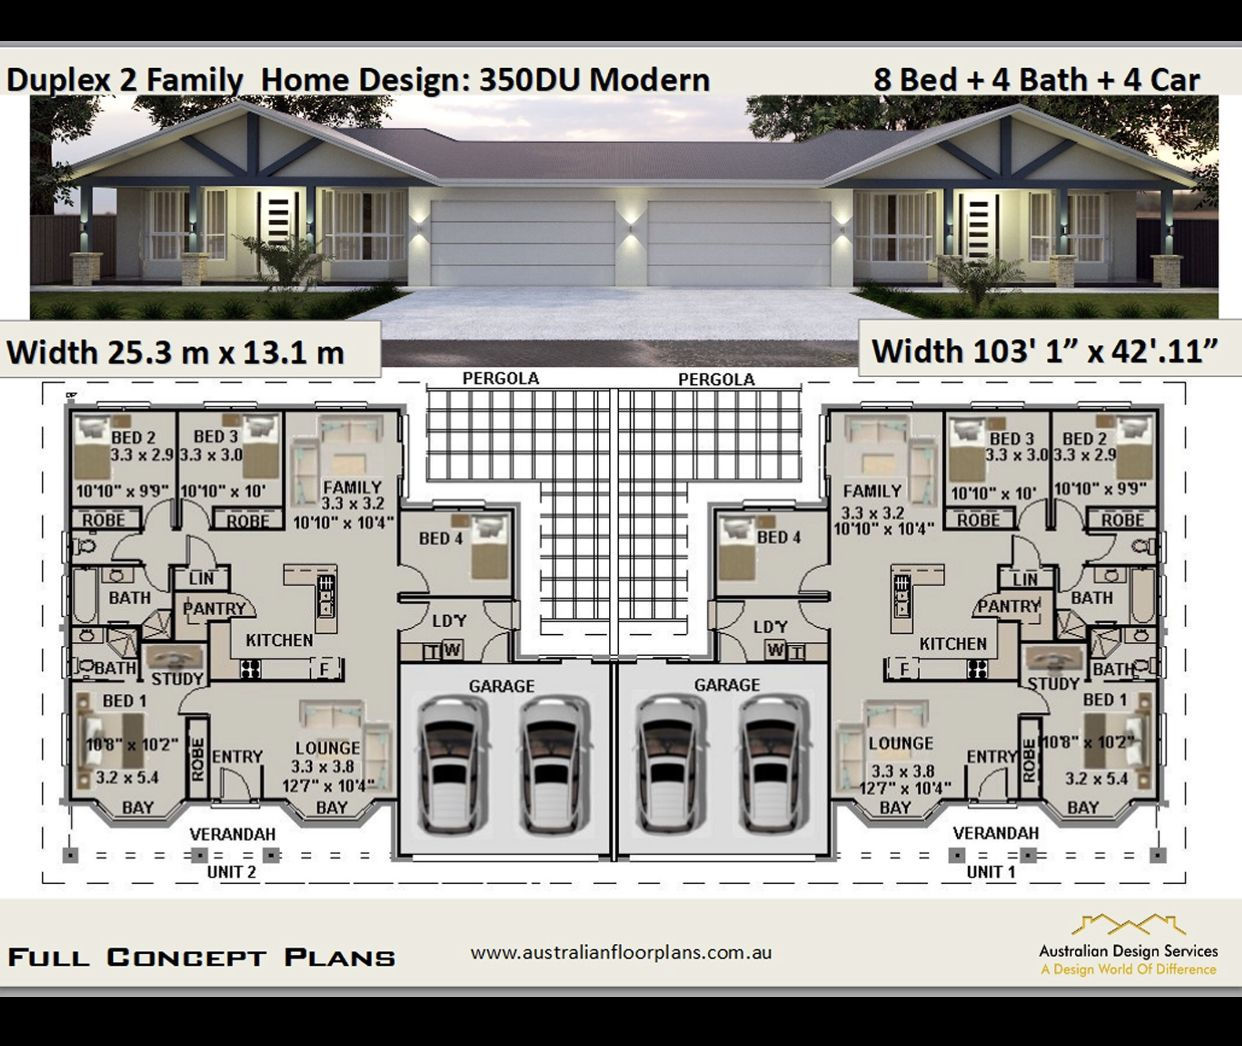 Pin By Gloria Major On For The Home In 2020 Duplex Design Duplex Plans House Plans For Sale